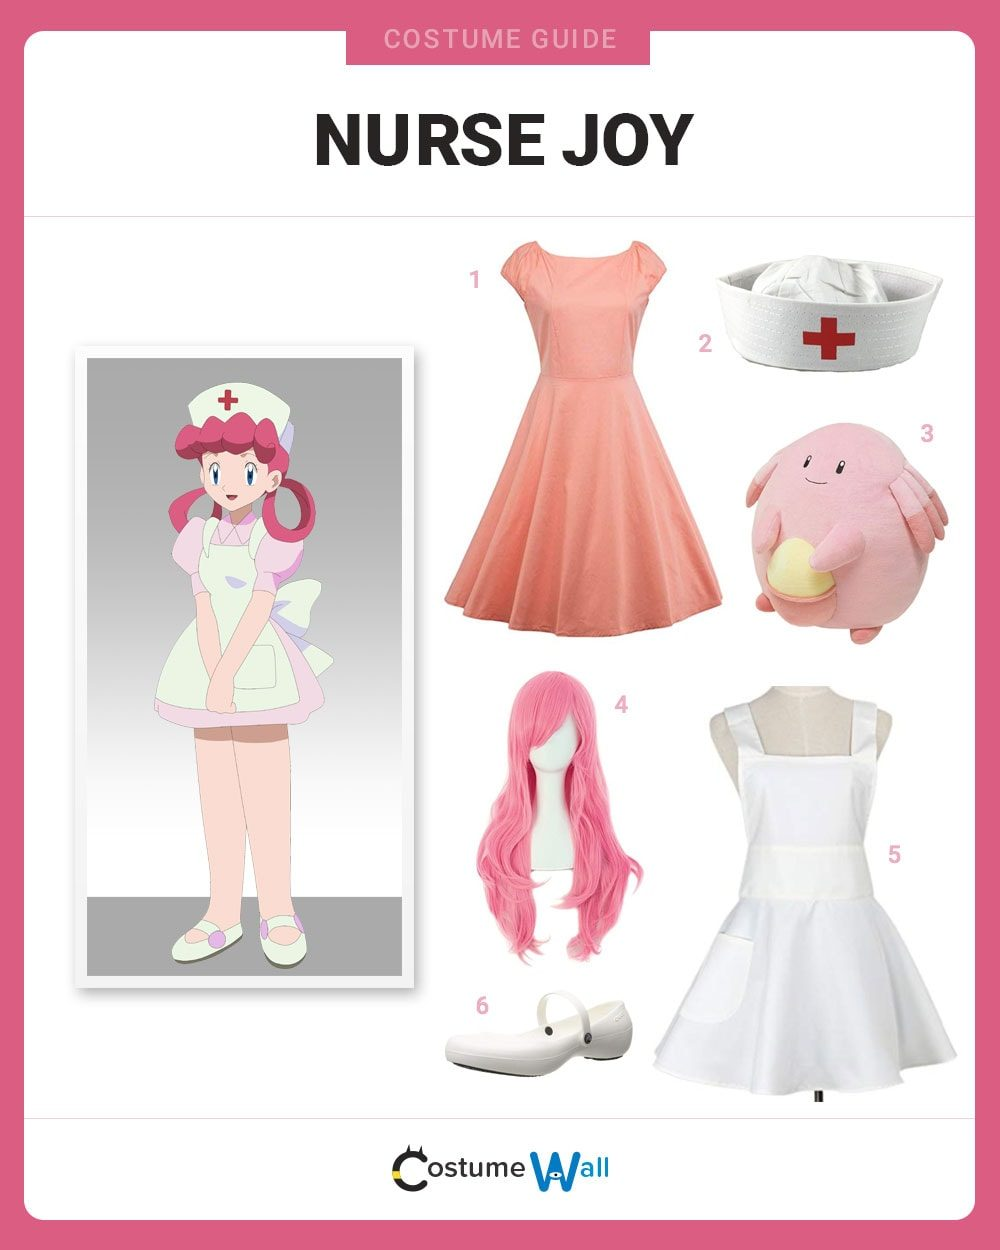 Nurse Joy Costume Guide